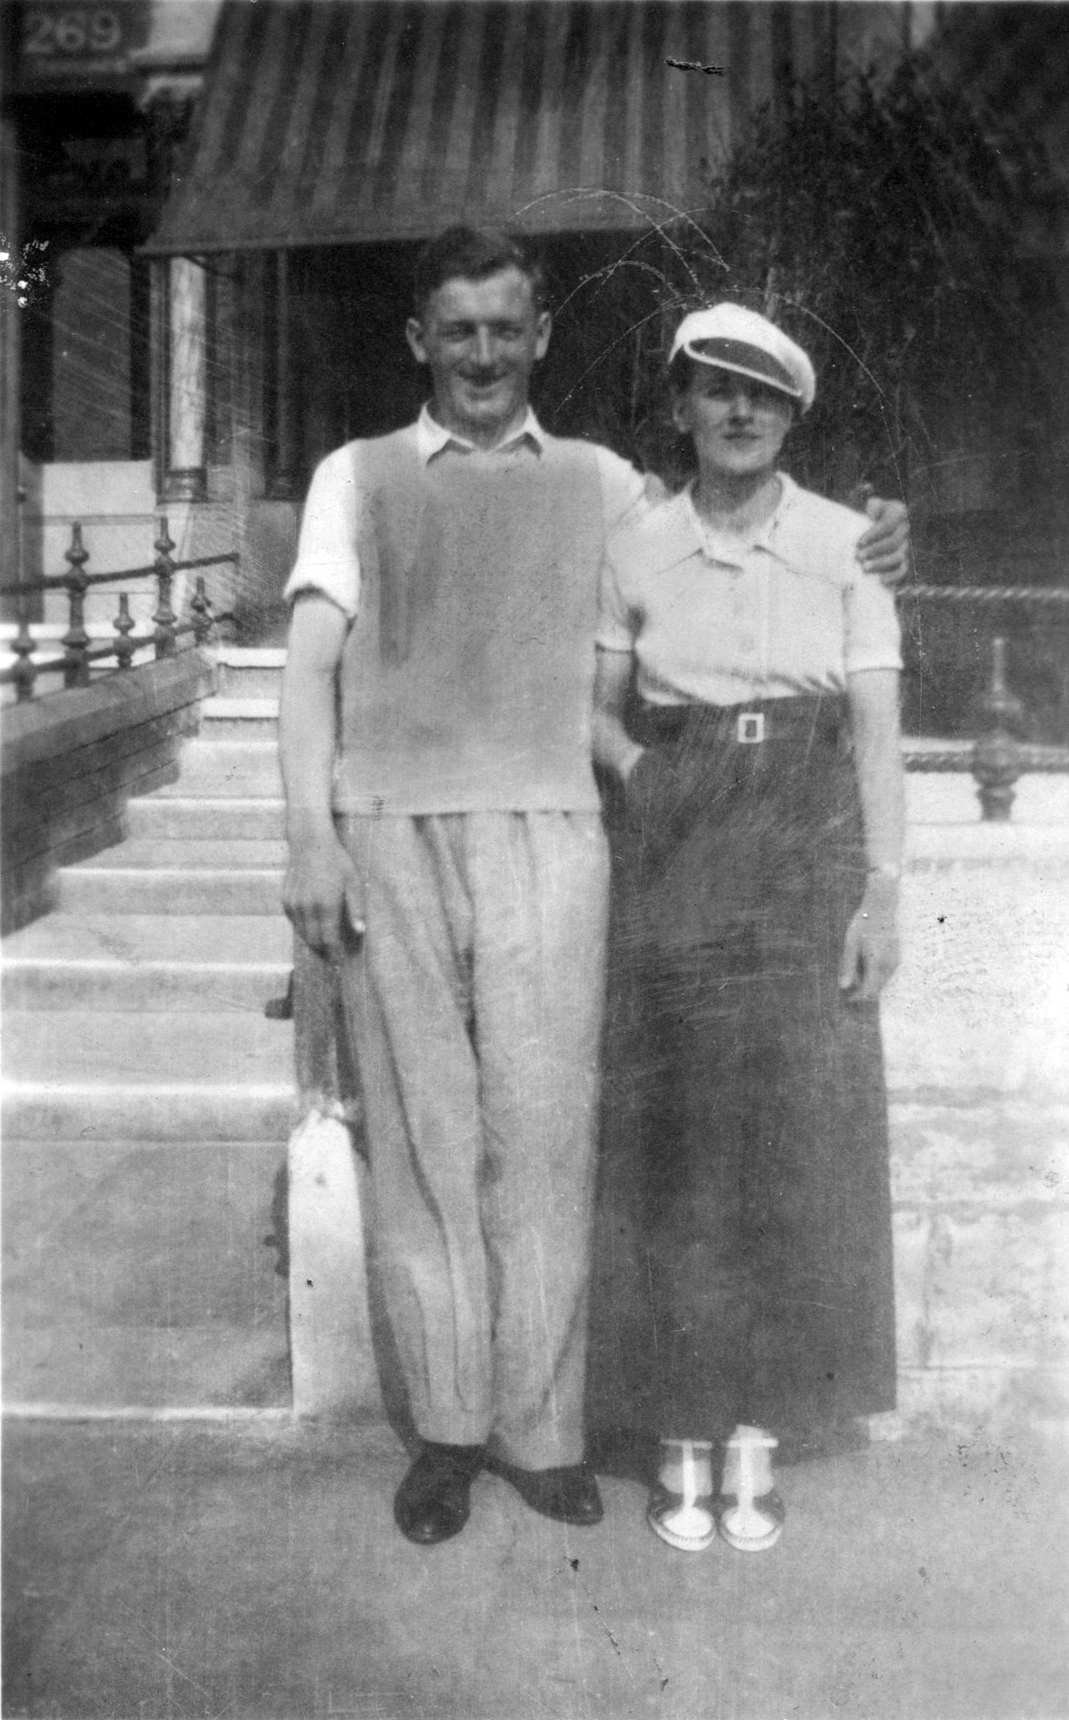 Man And Woman On Holiday In Blackpool 1940